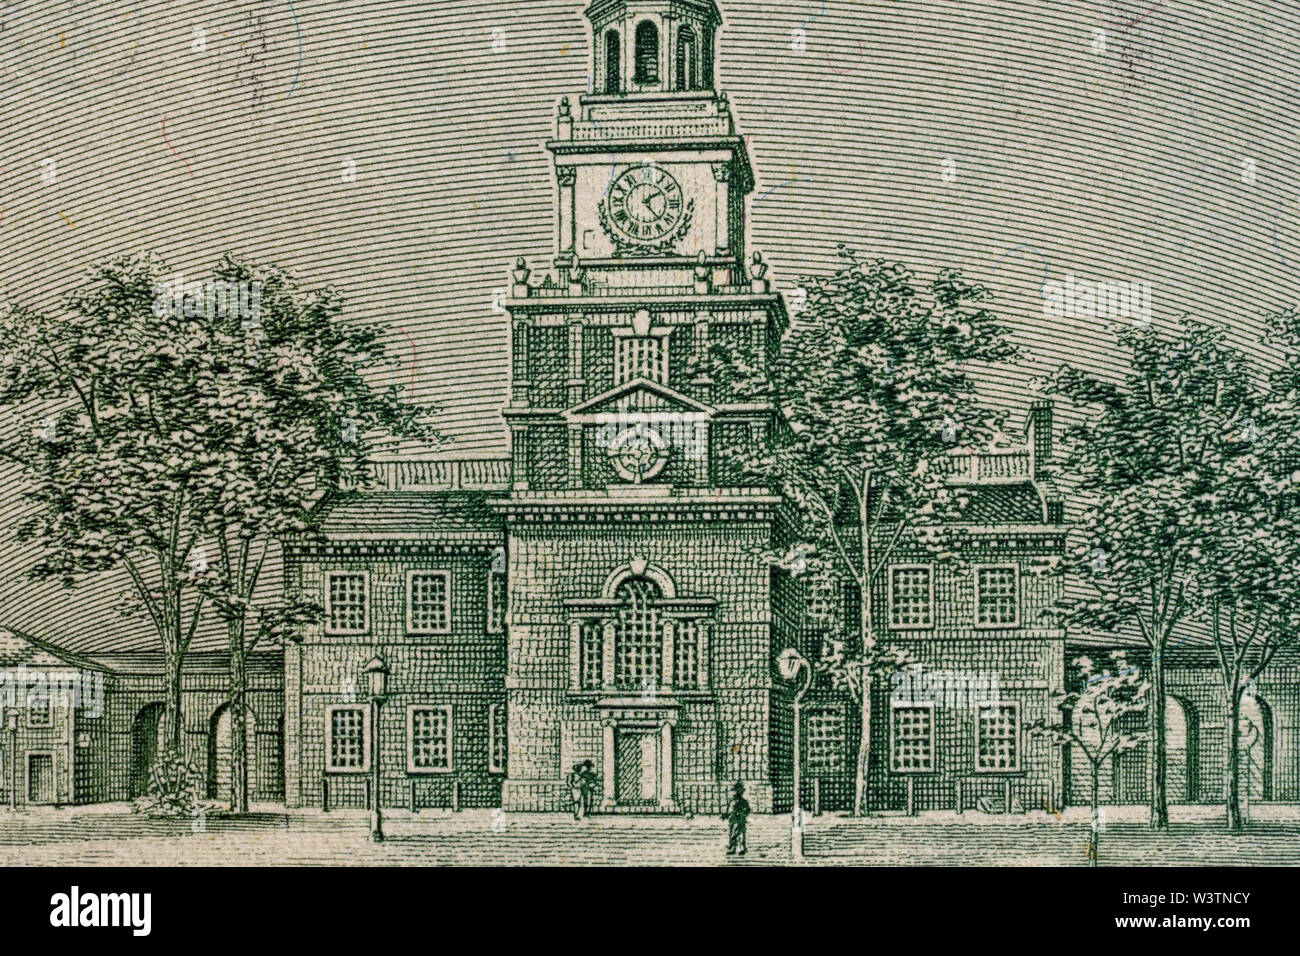 A fragment of a bill of 100 US dollars.Independence Hall - Stock Image